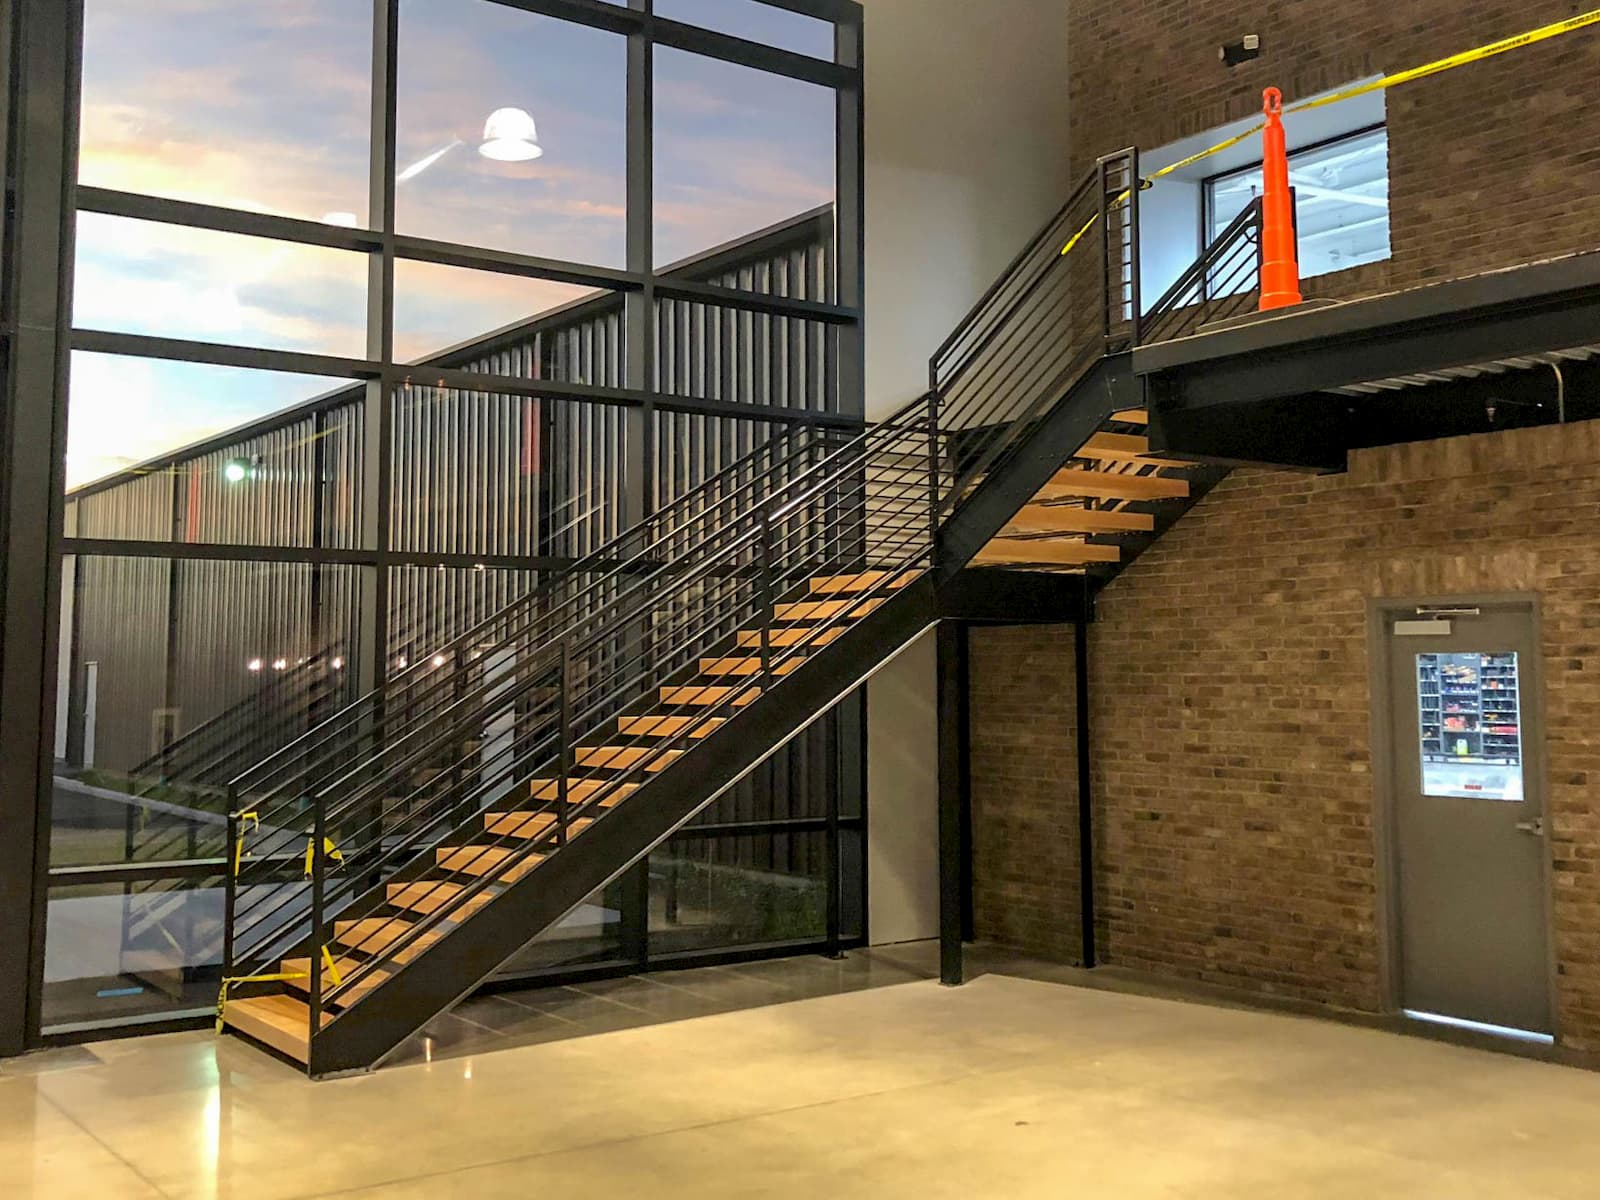 Commercial Stair with 90 Degree Turn to Balcony